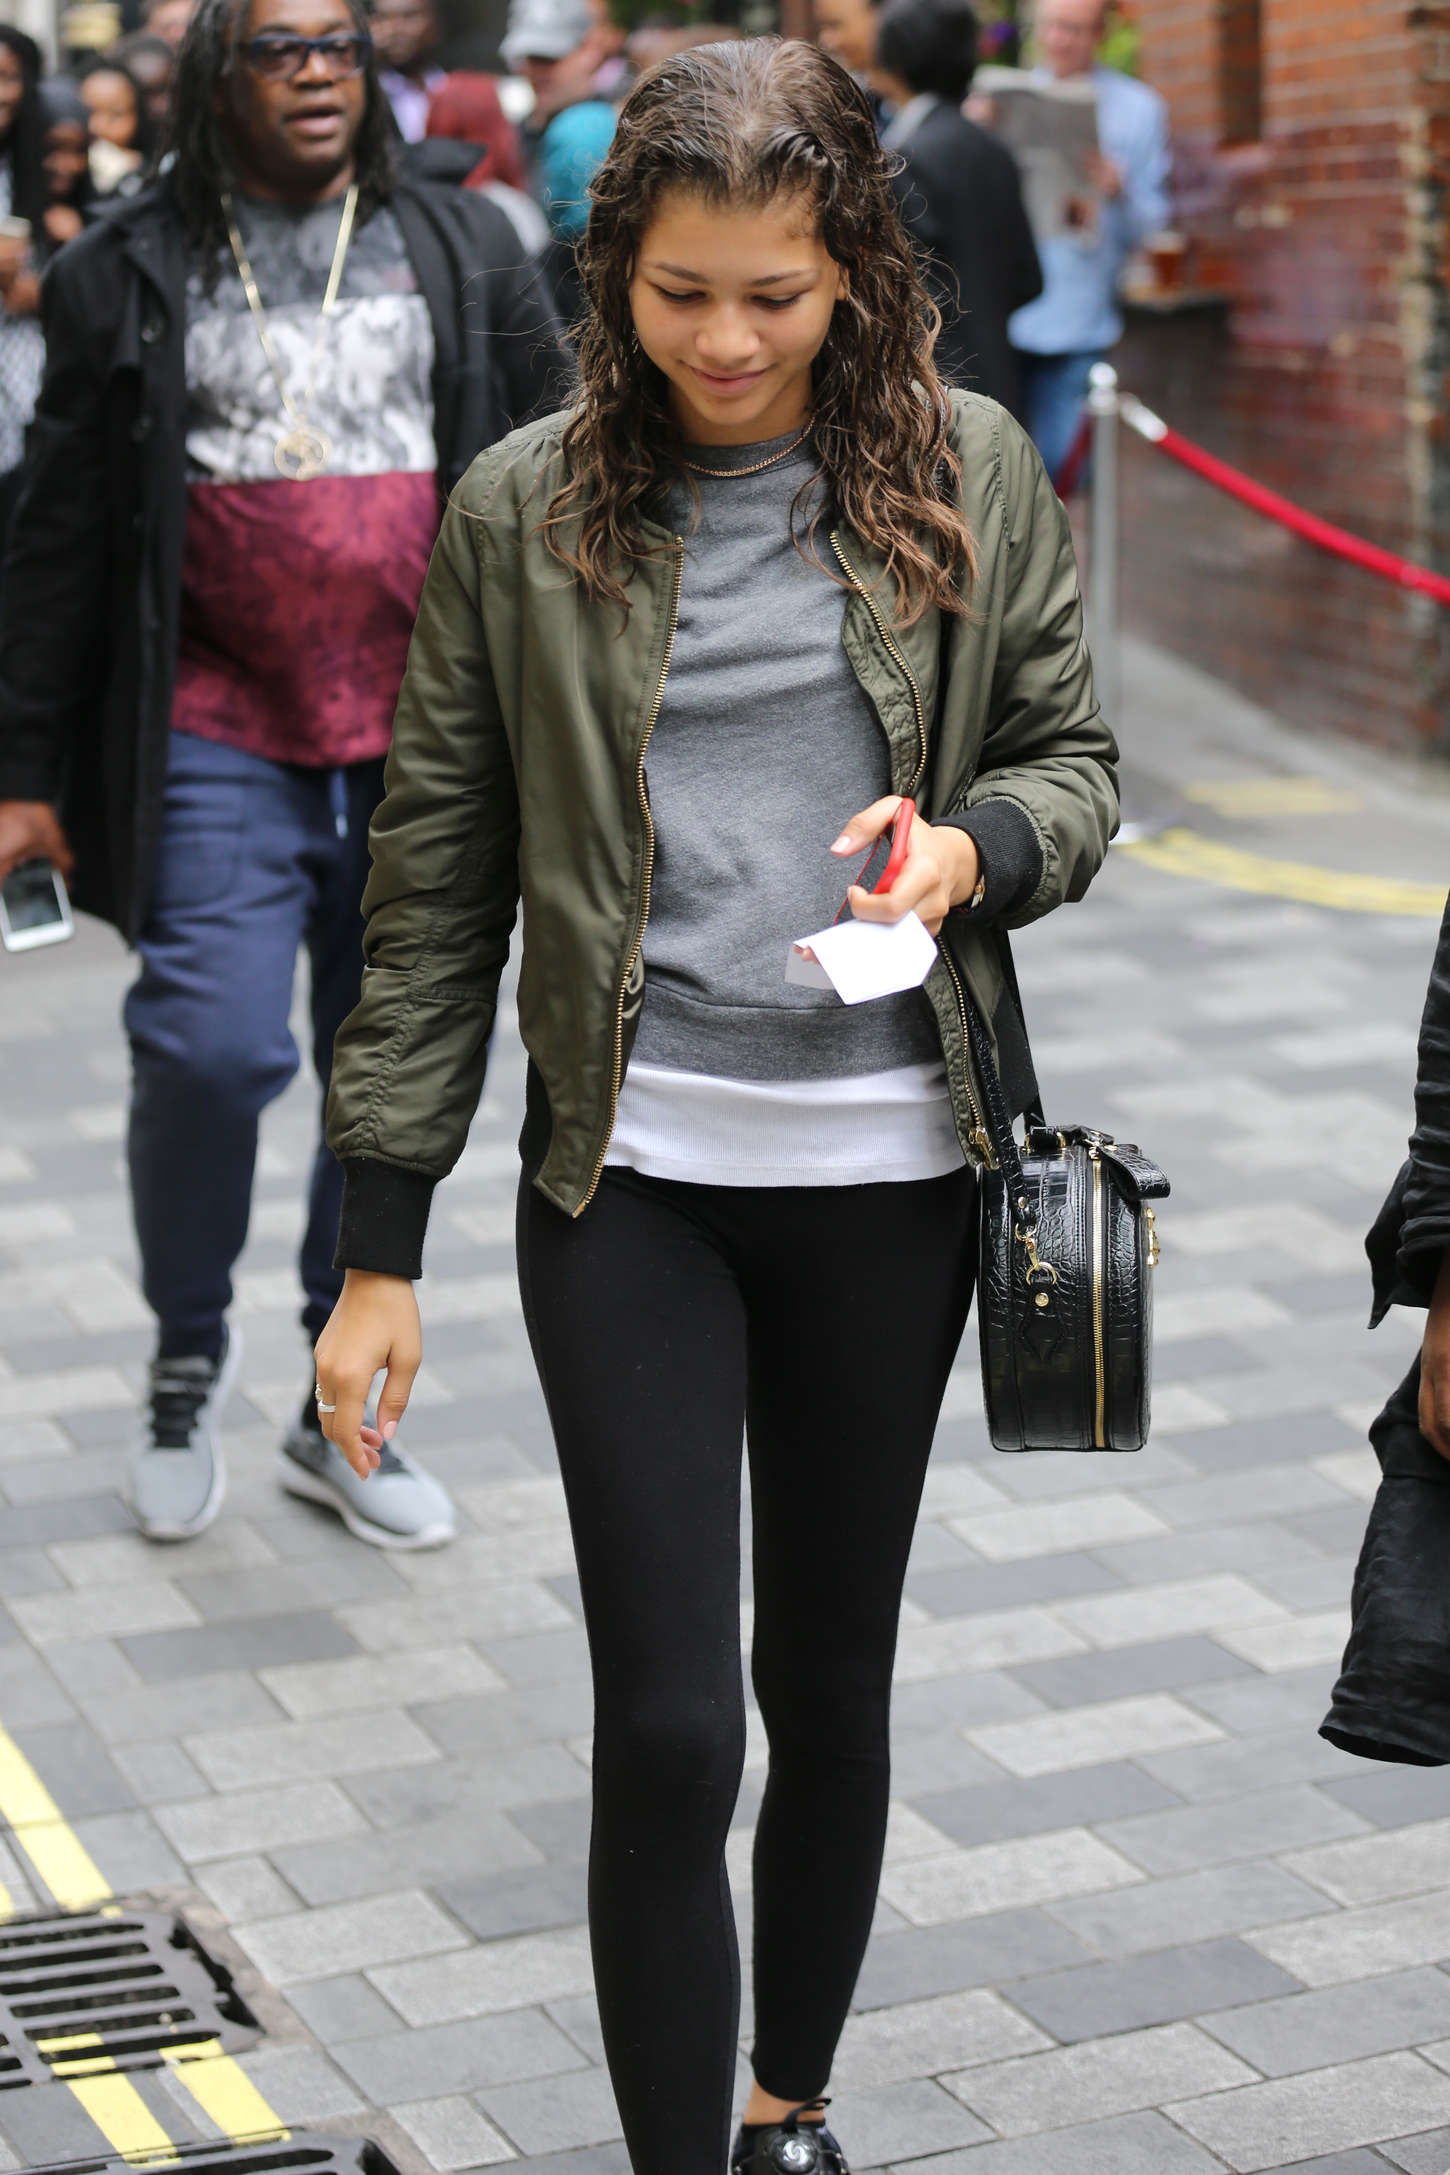 Zendaya in Tights out in London